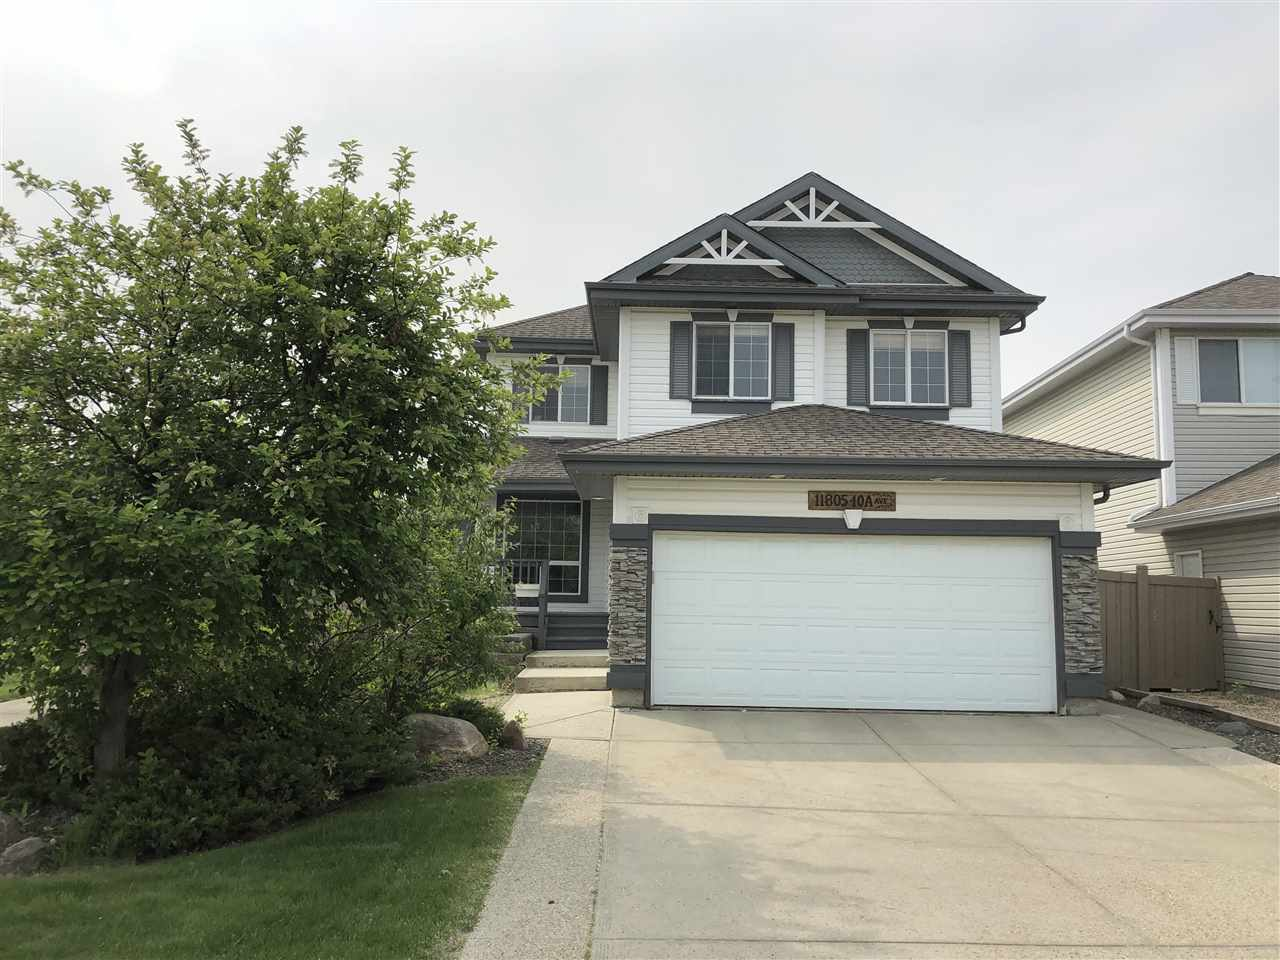 MLS® listing #E4164091 for sale located at 11805 10A Avenue